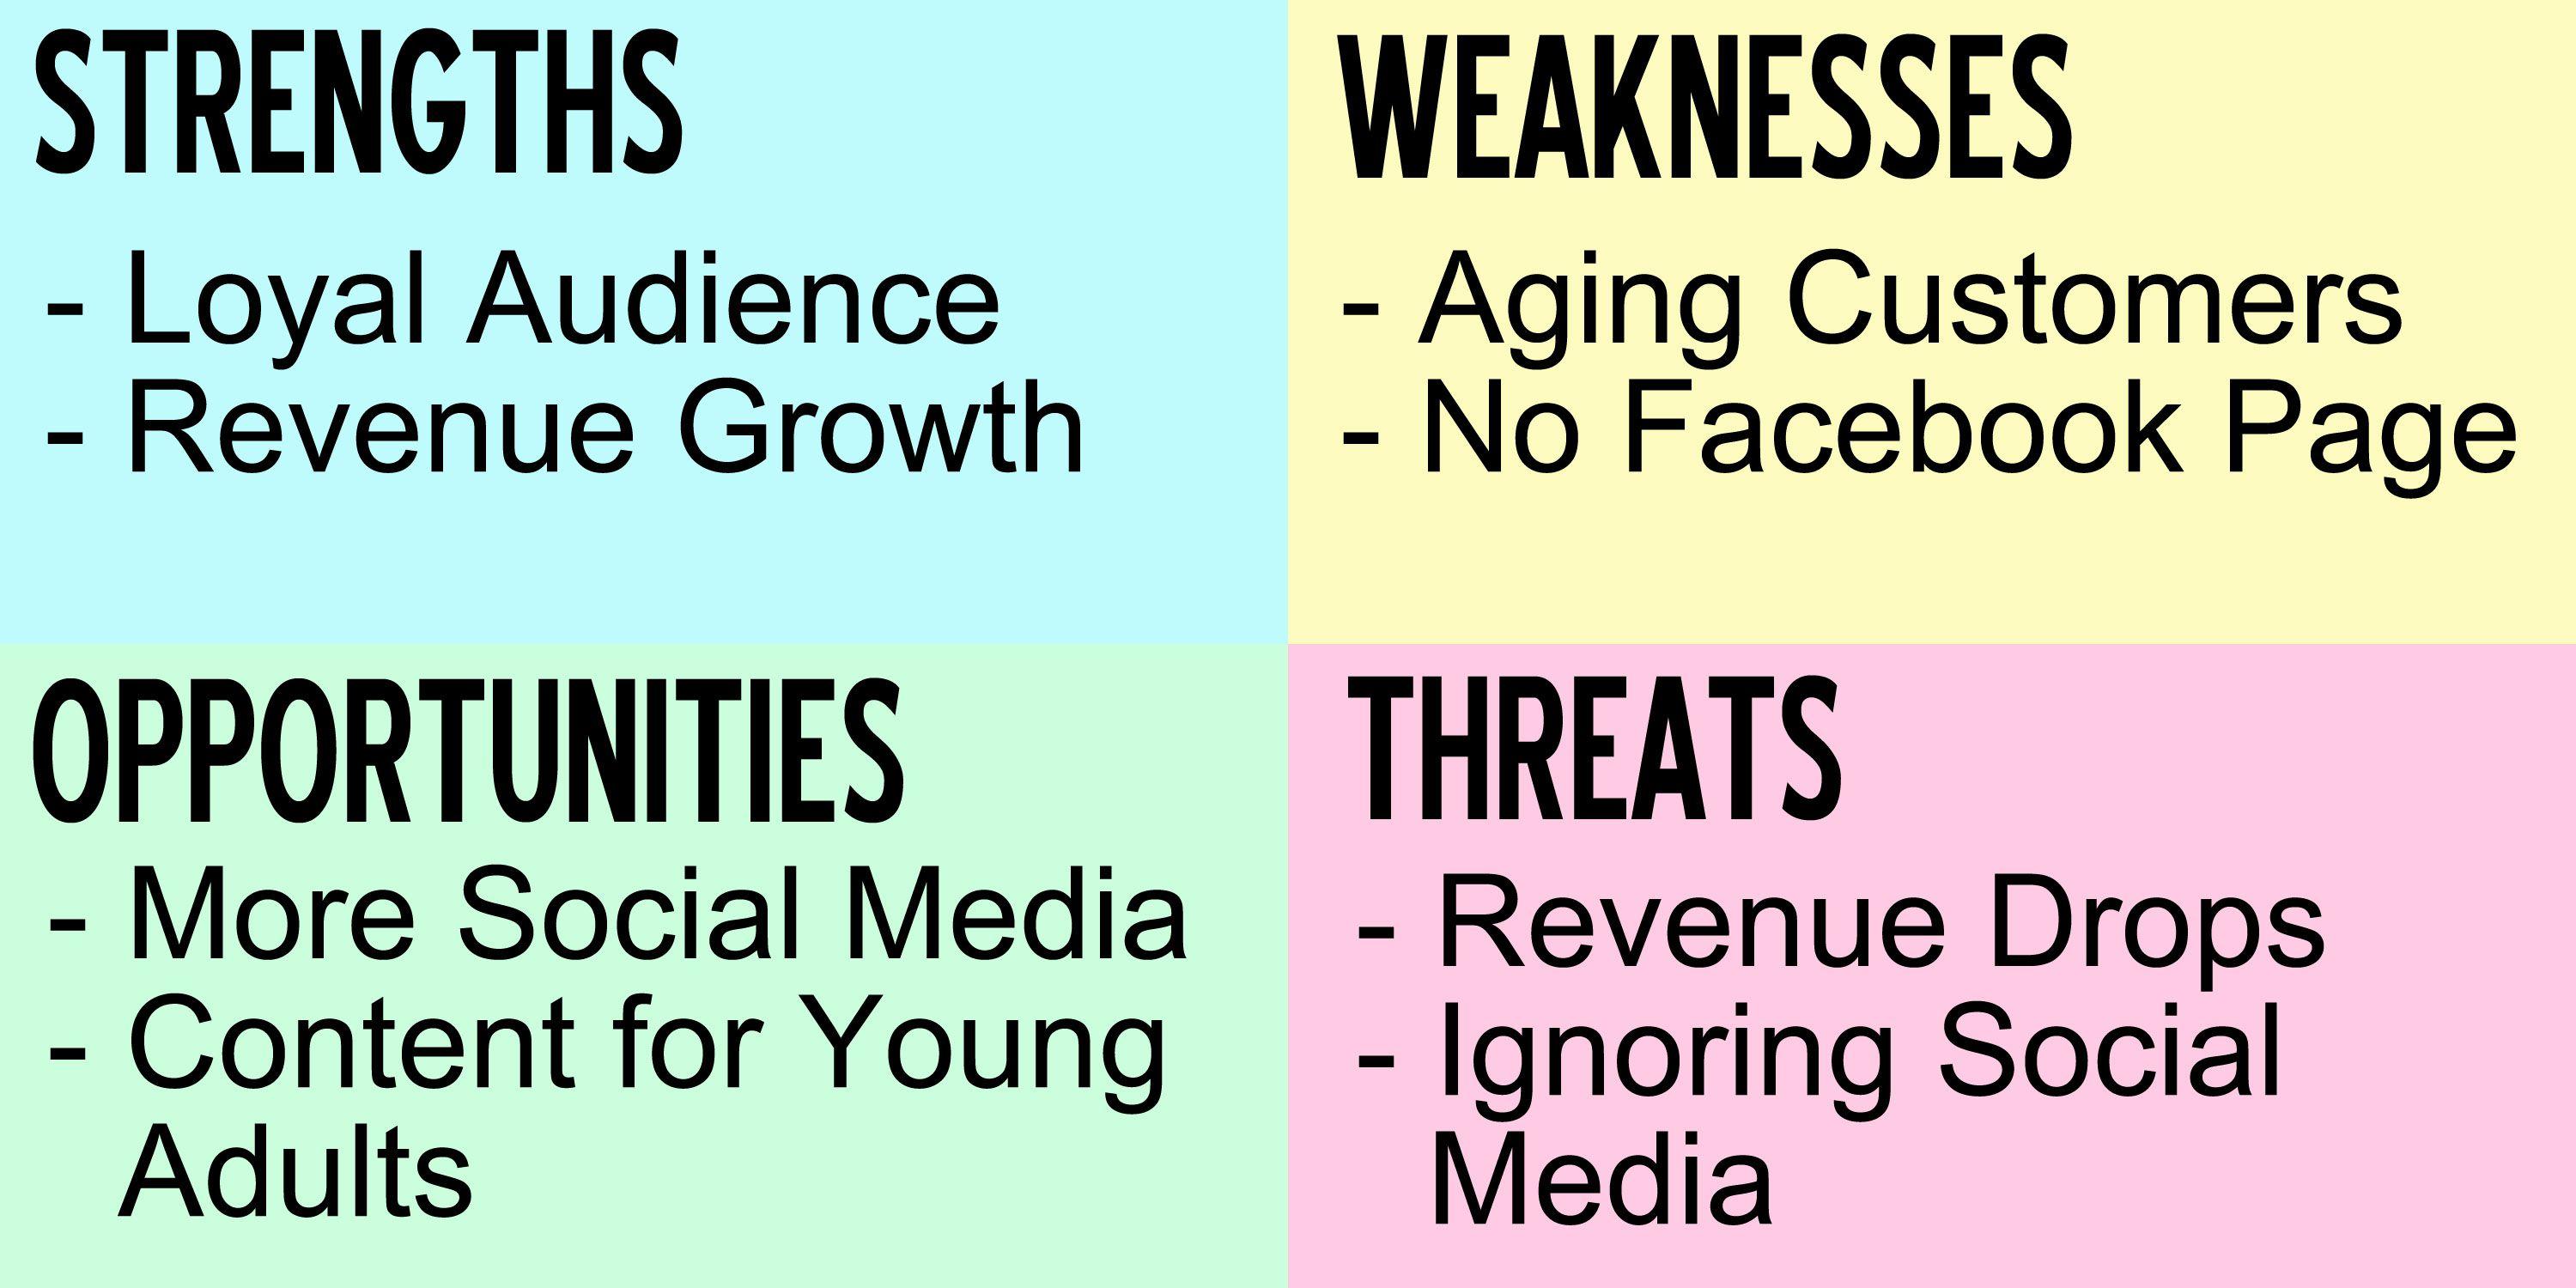 radio one swot analysis This swot analysis features 12 companies, including yahoo inc, viacom inc, alphabet inc, myspace, inc, cbs radio inc, cumulus media inc.